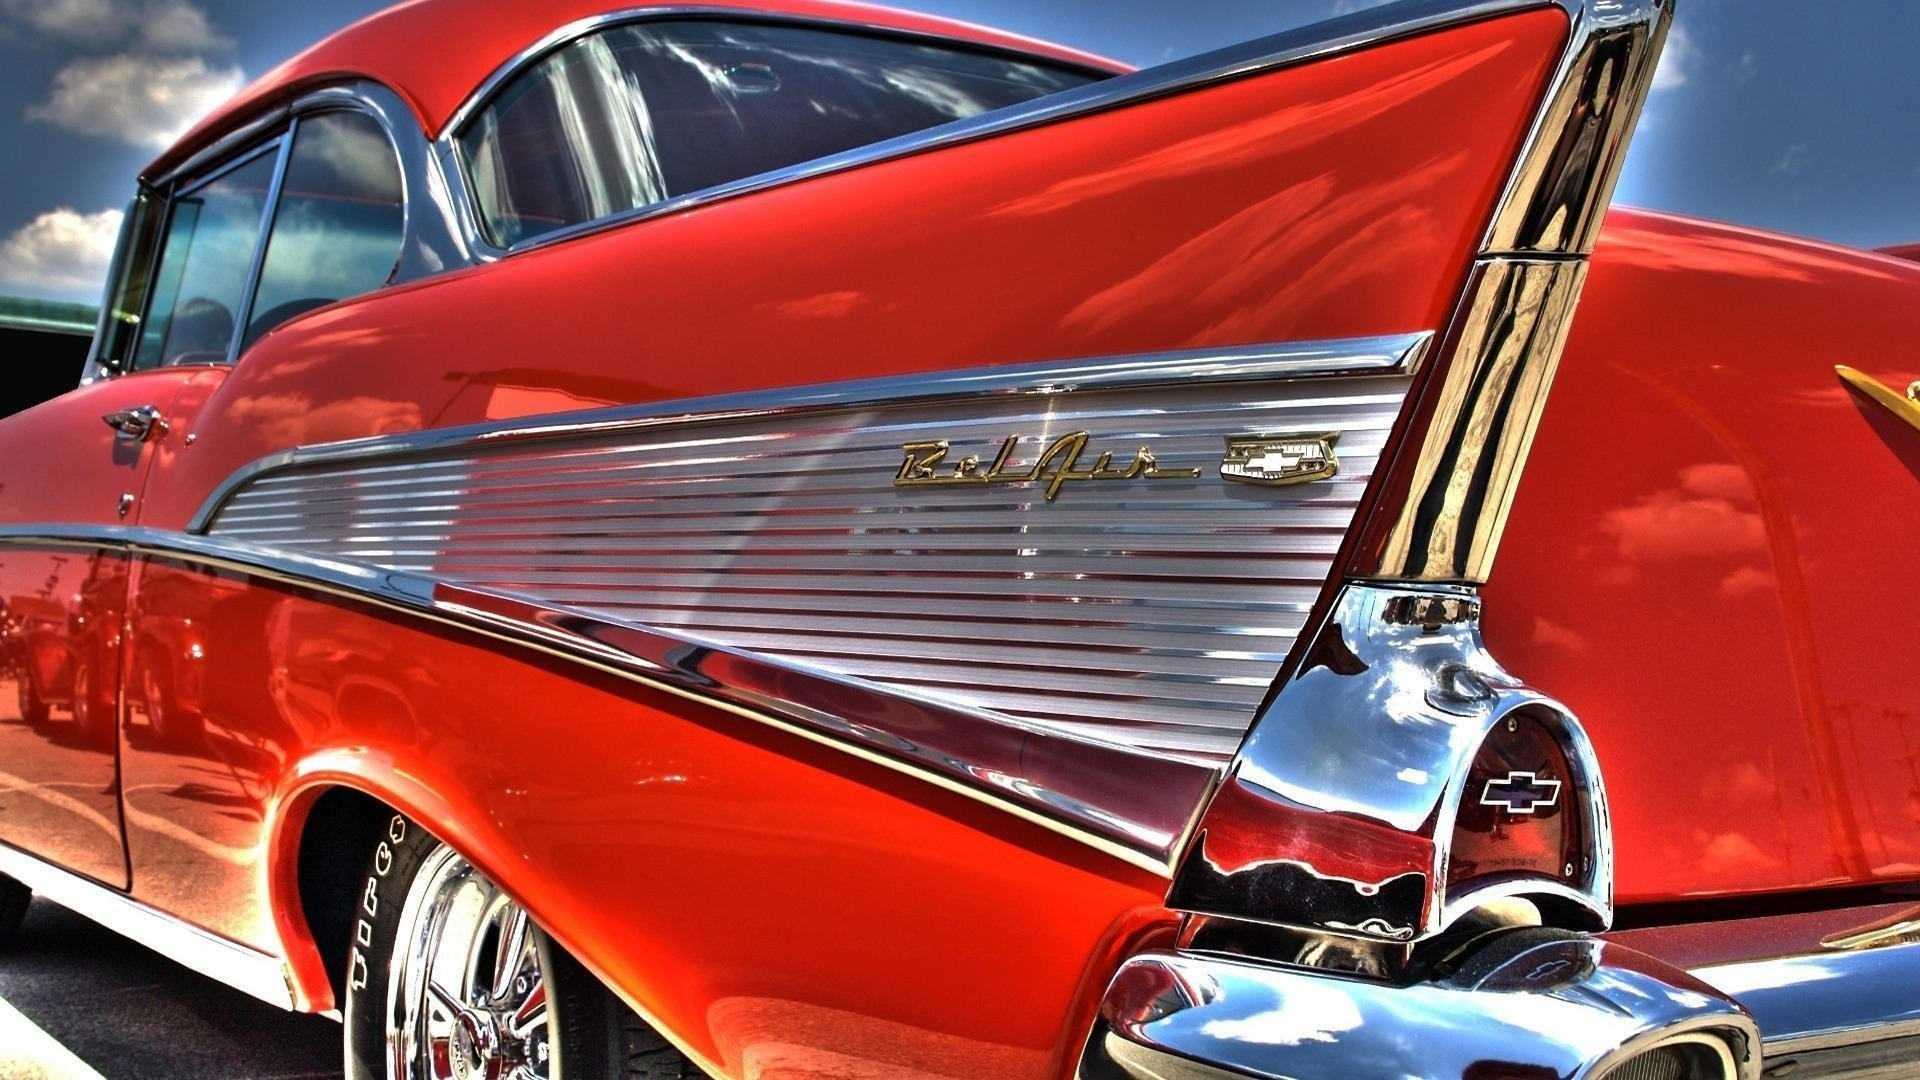 New 57 Chevy Wallpaper ·① Wallpapertag On This Month